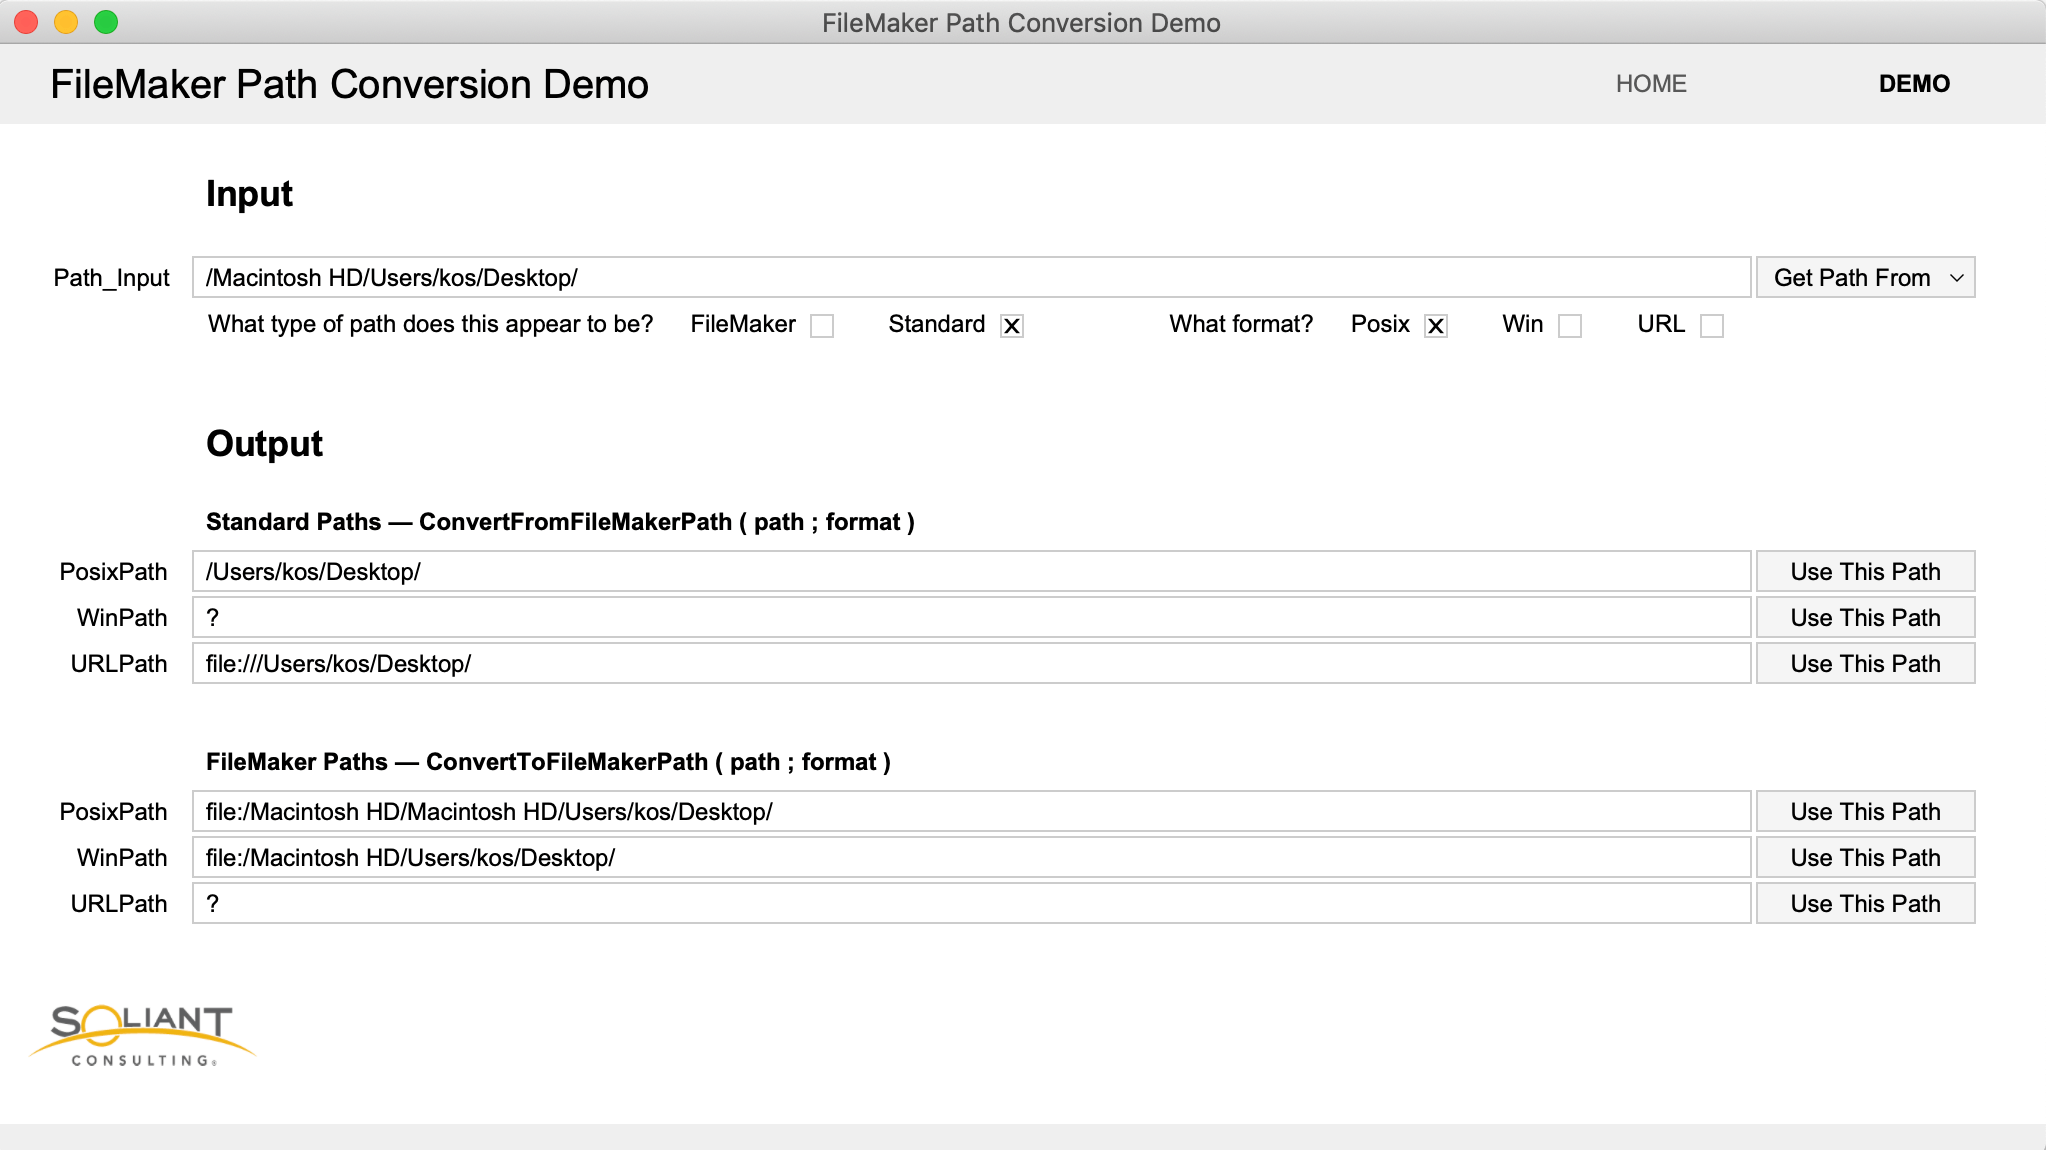 Screenshot from the FileMaker Path Conversion Demo file